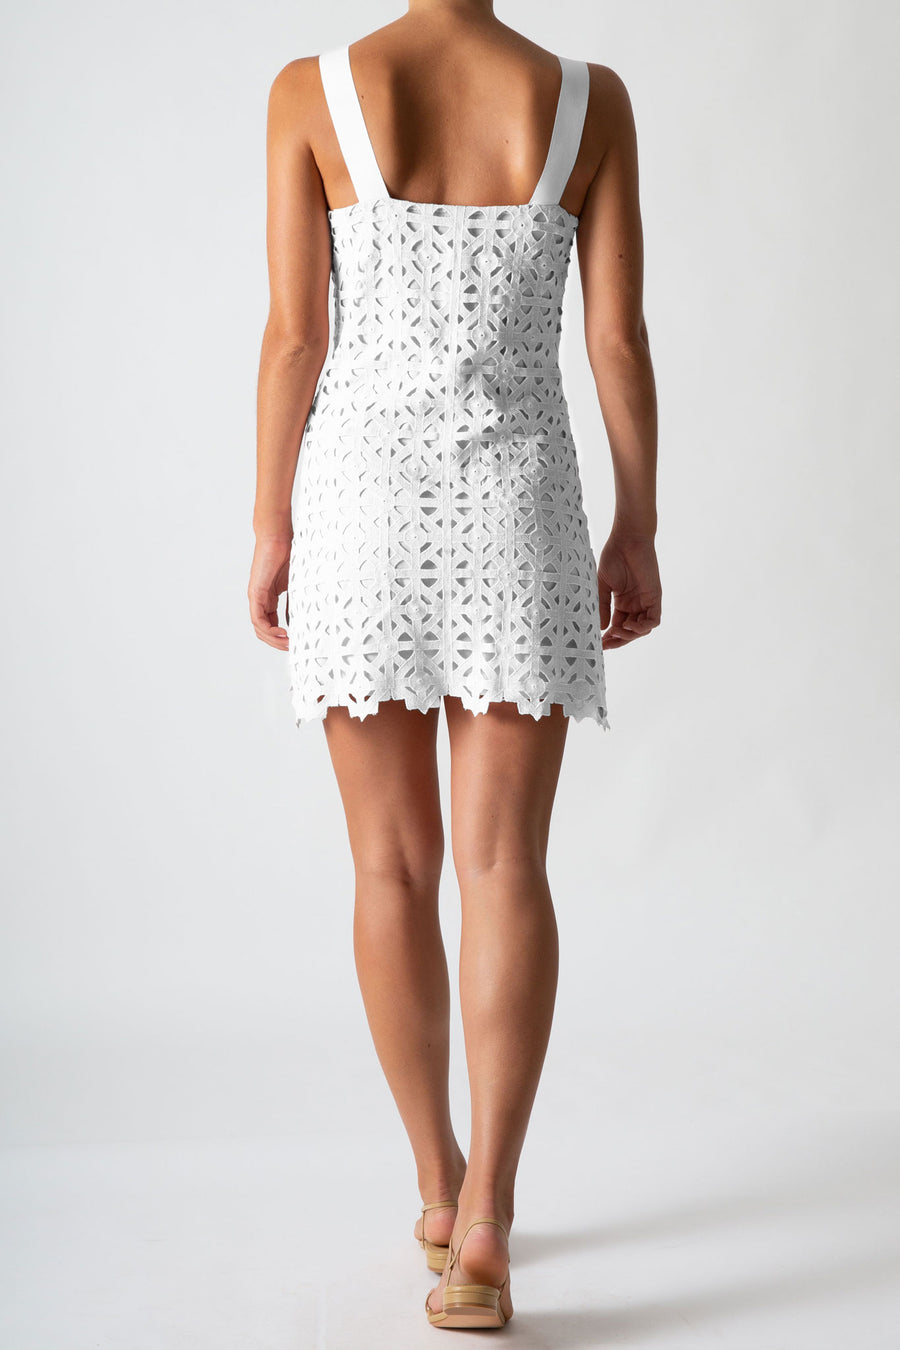 This is a back view photo of a woman wearing a mini white lace dress with ribbon straps.